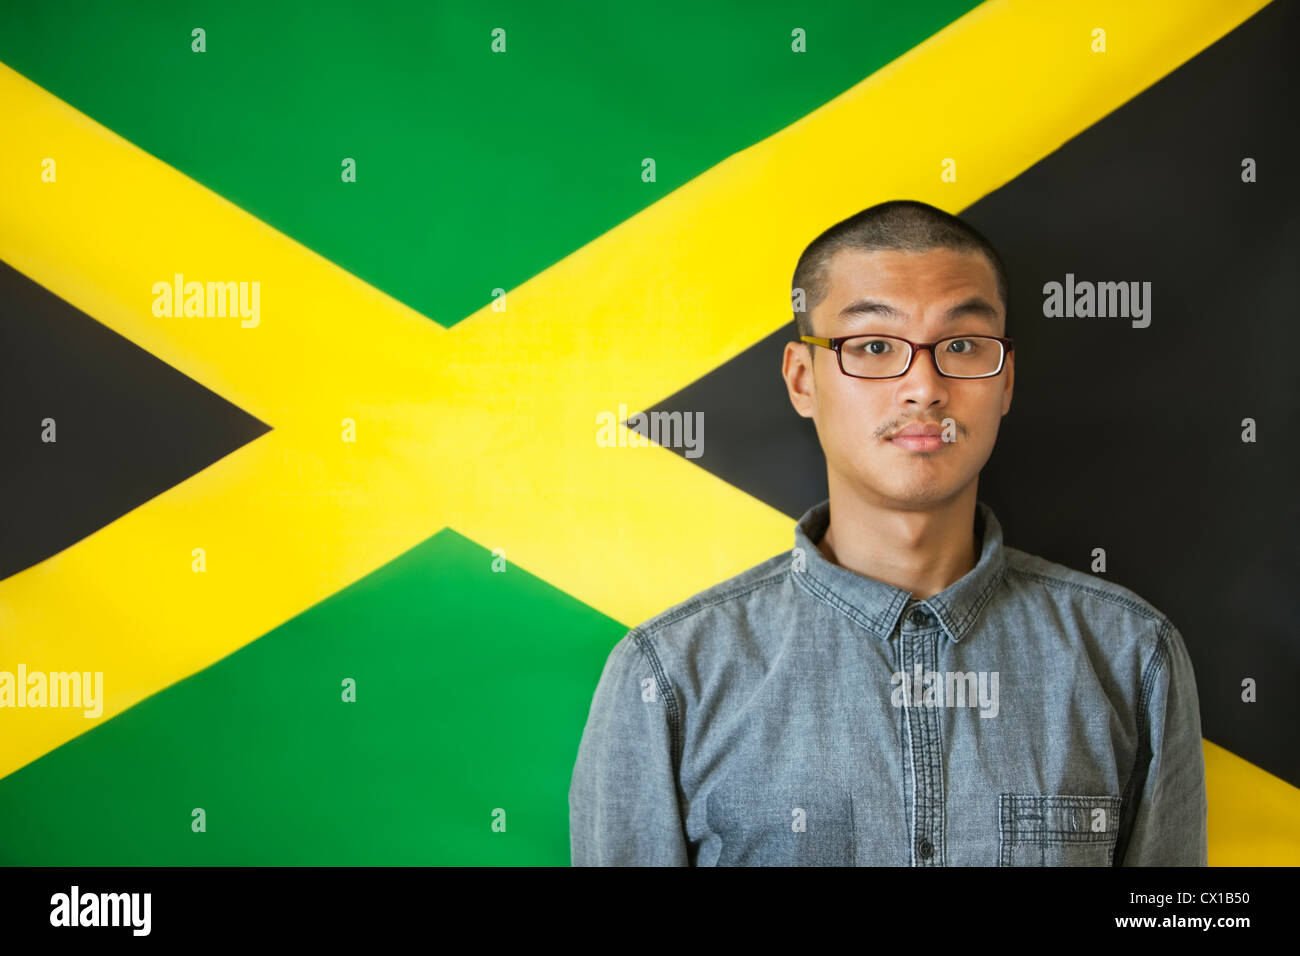 Portrait of a man with raised eyebrows against Jamaican flag - Stock Image